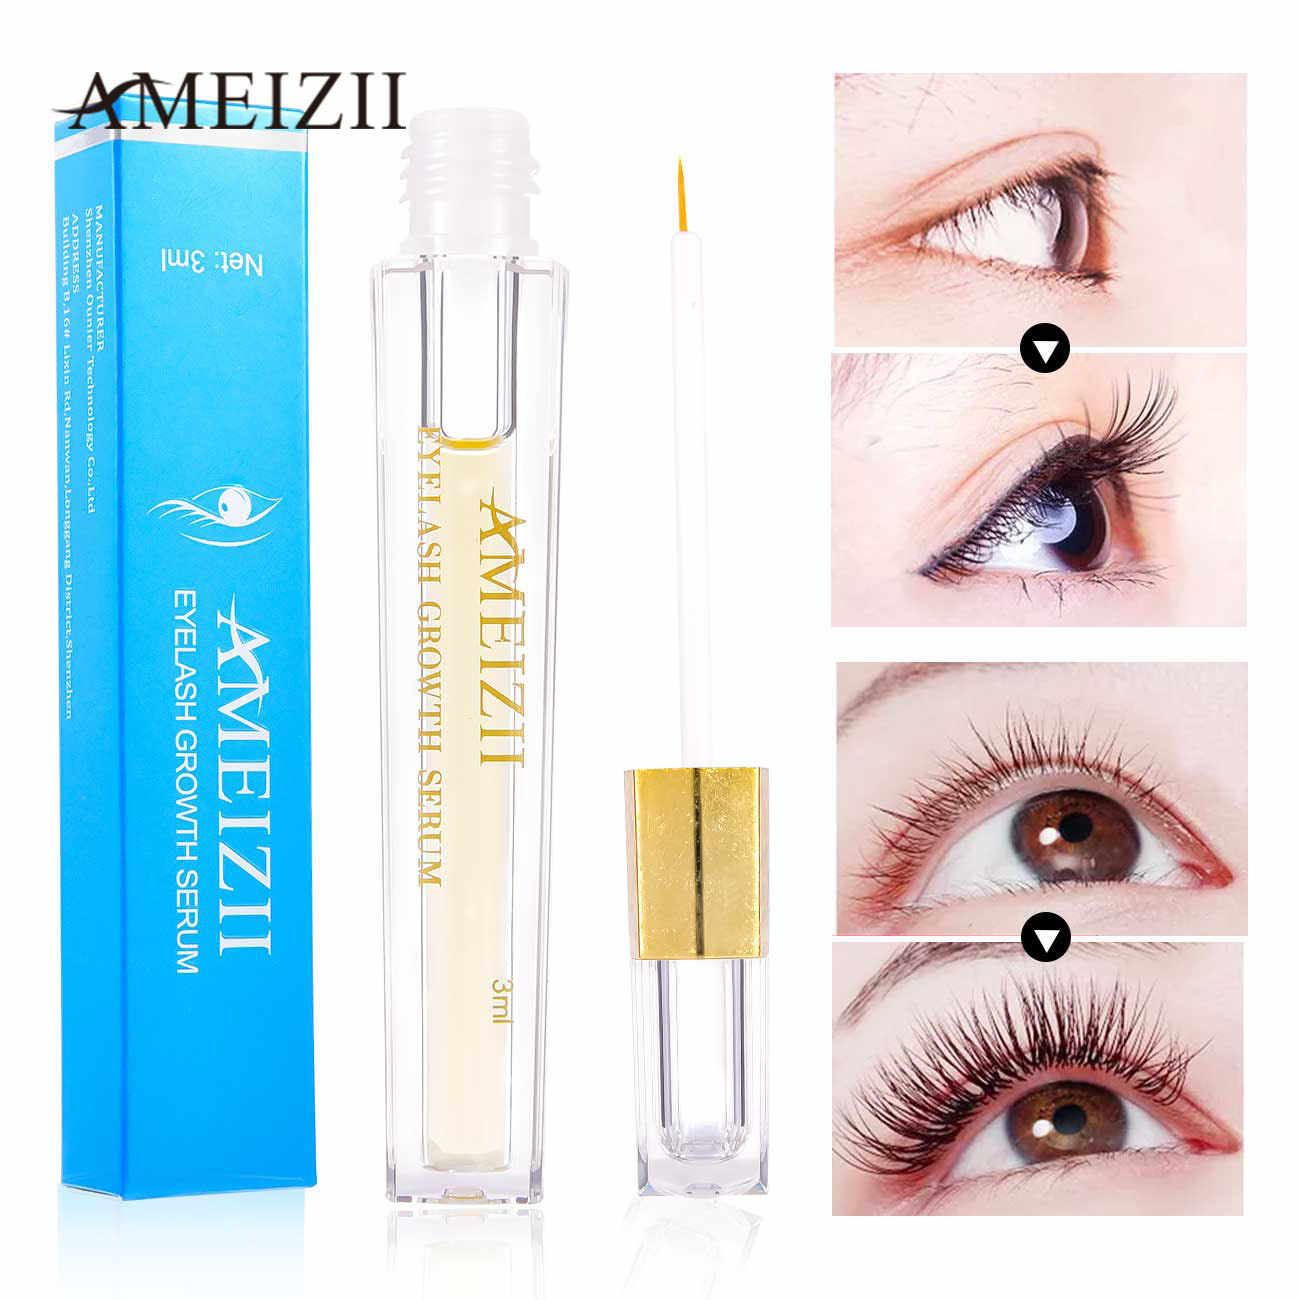 AMEIZII Eyelash Growth Eye Serum For Eye Lash Lift Longer